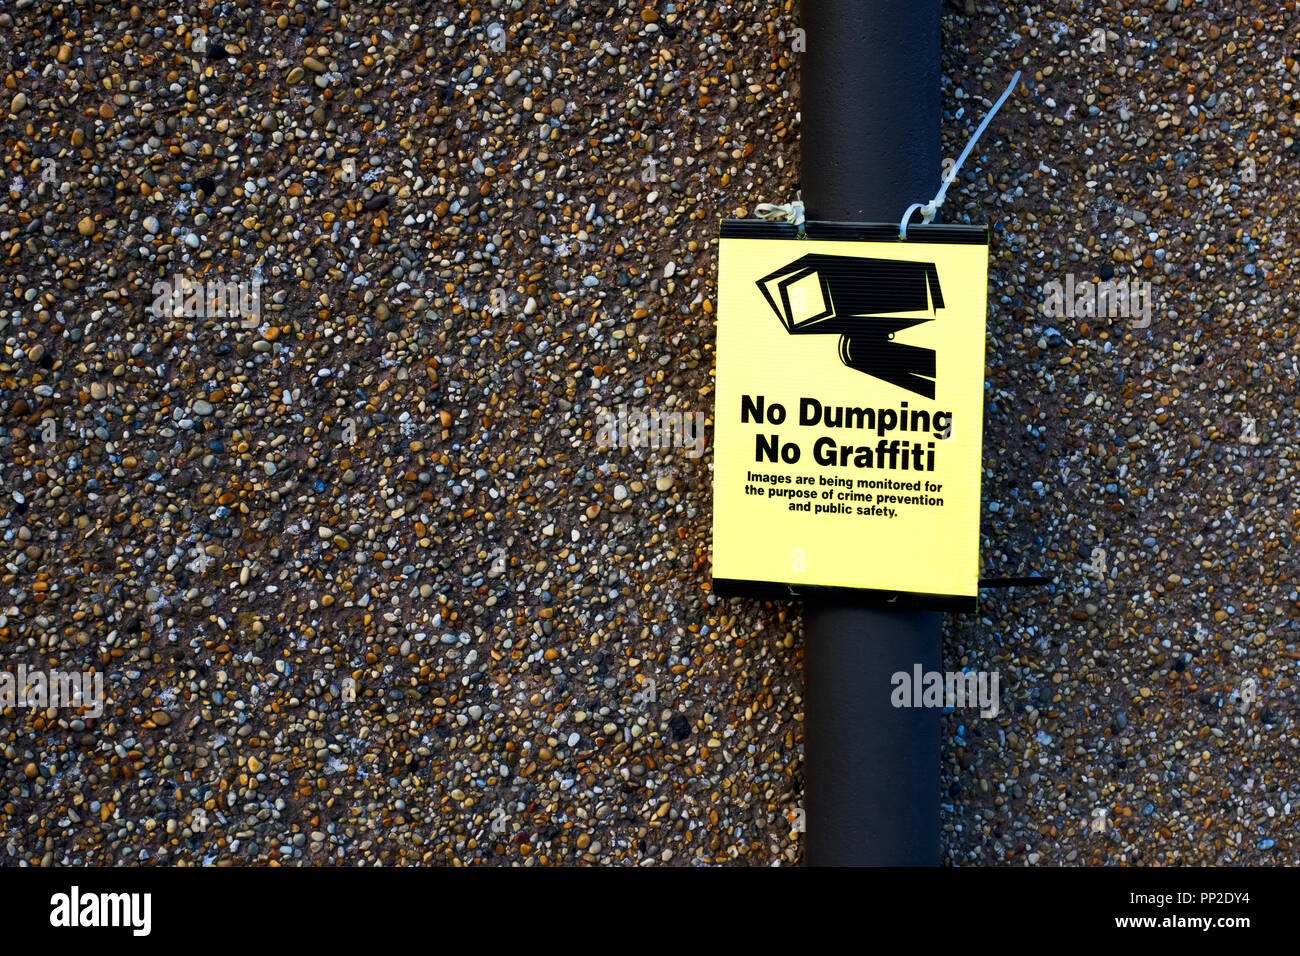 No dumping graffiti CCTV sign post and wall - Stock Image